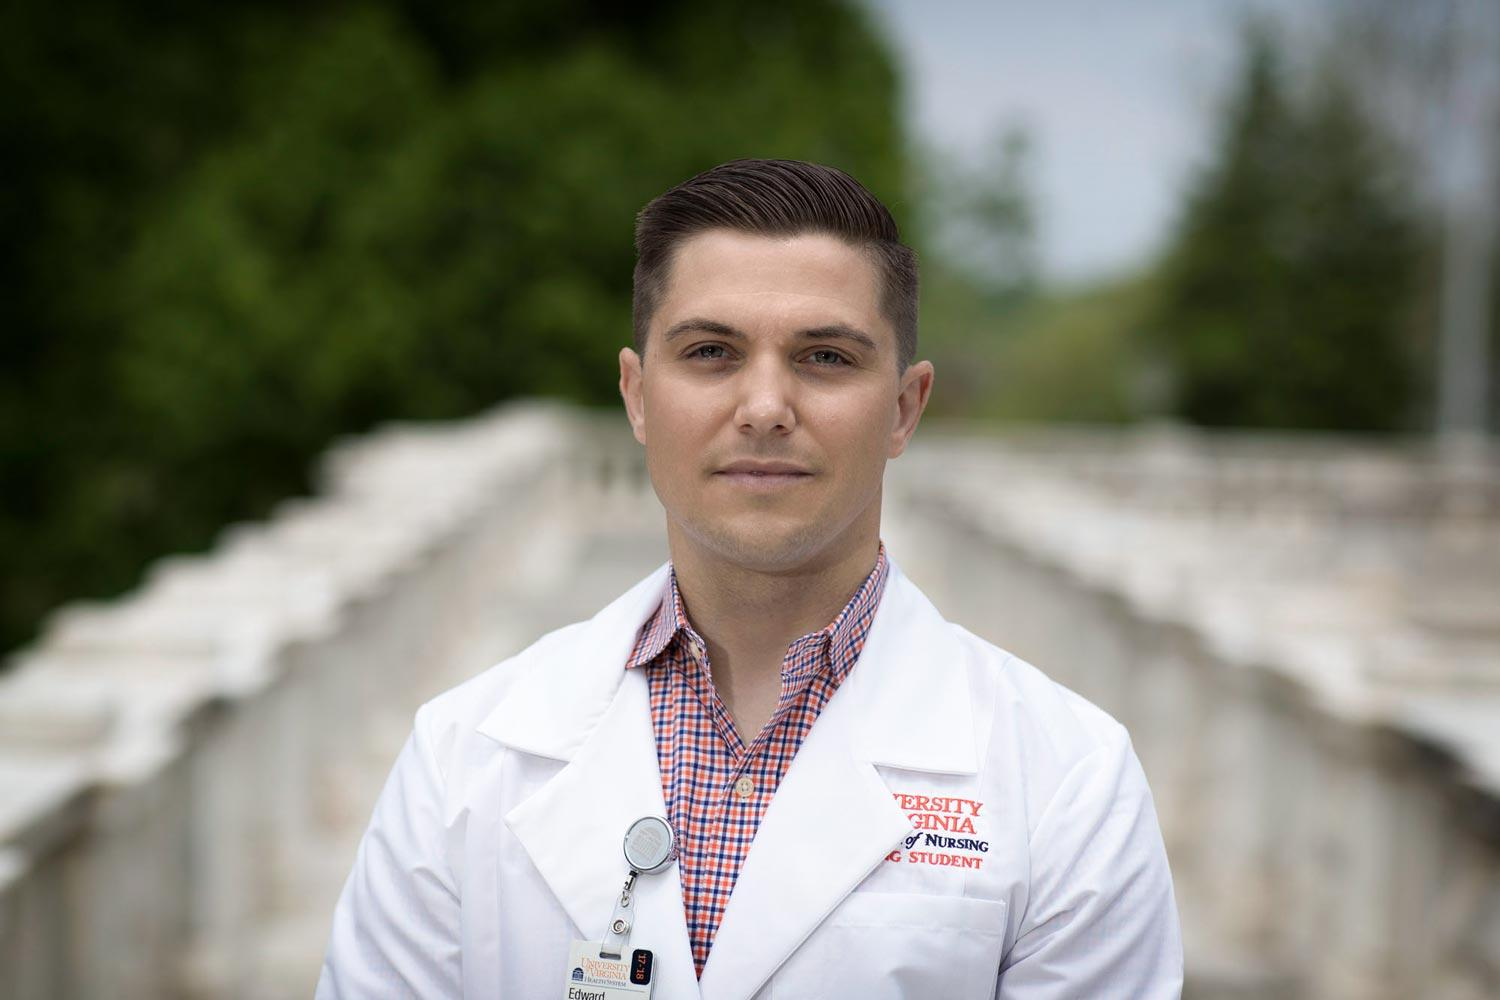 A former EMS volunteer, Blake Duffer often wondered what happened to patients after he dropped them off at the hospital. That question eventually led to a career in nursing.